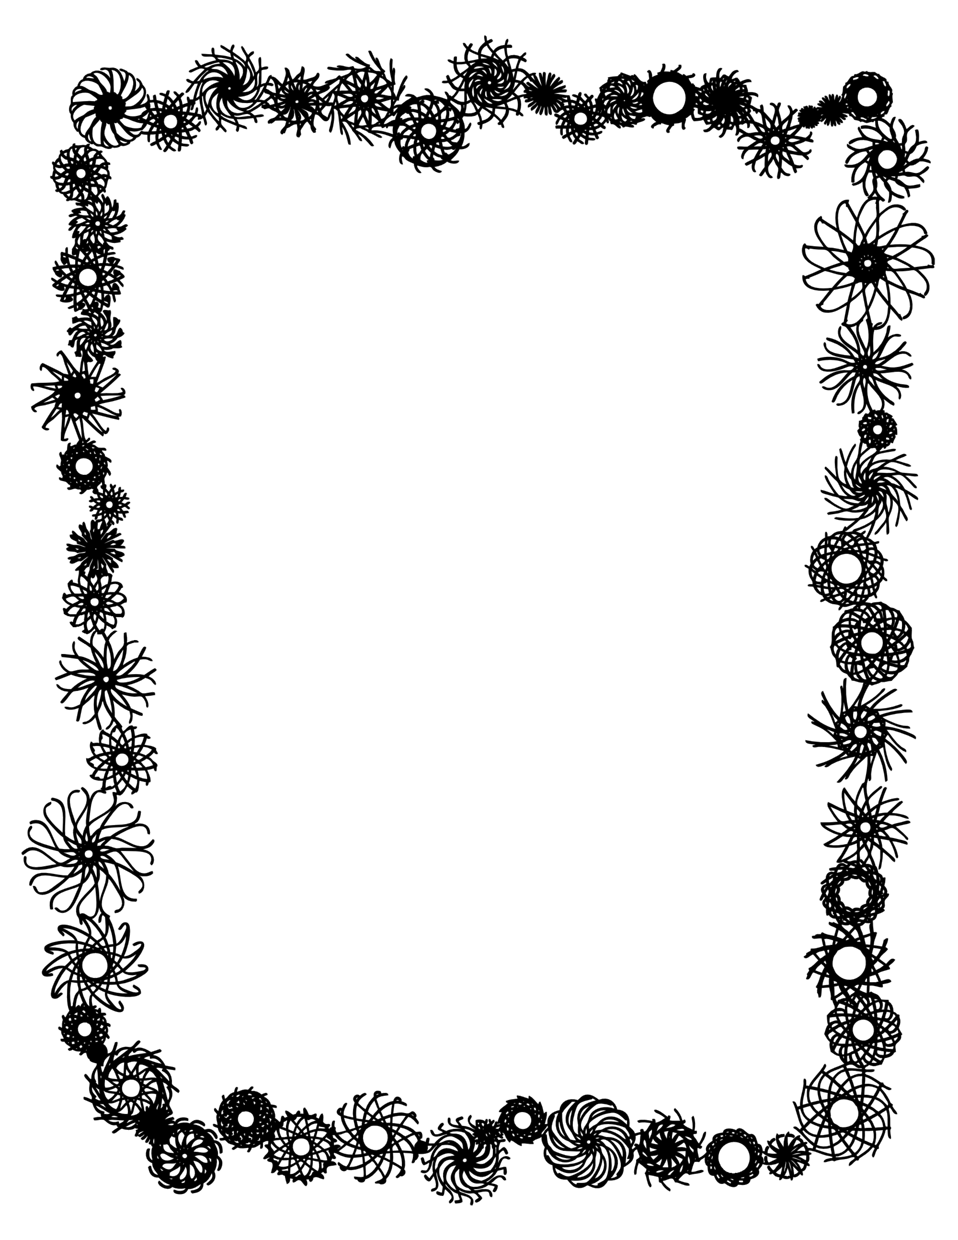 And Openclipart Picnic Stationery Vector Graphics Frames PNG Image